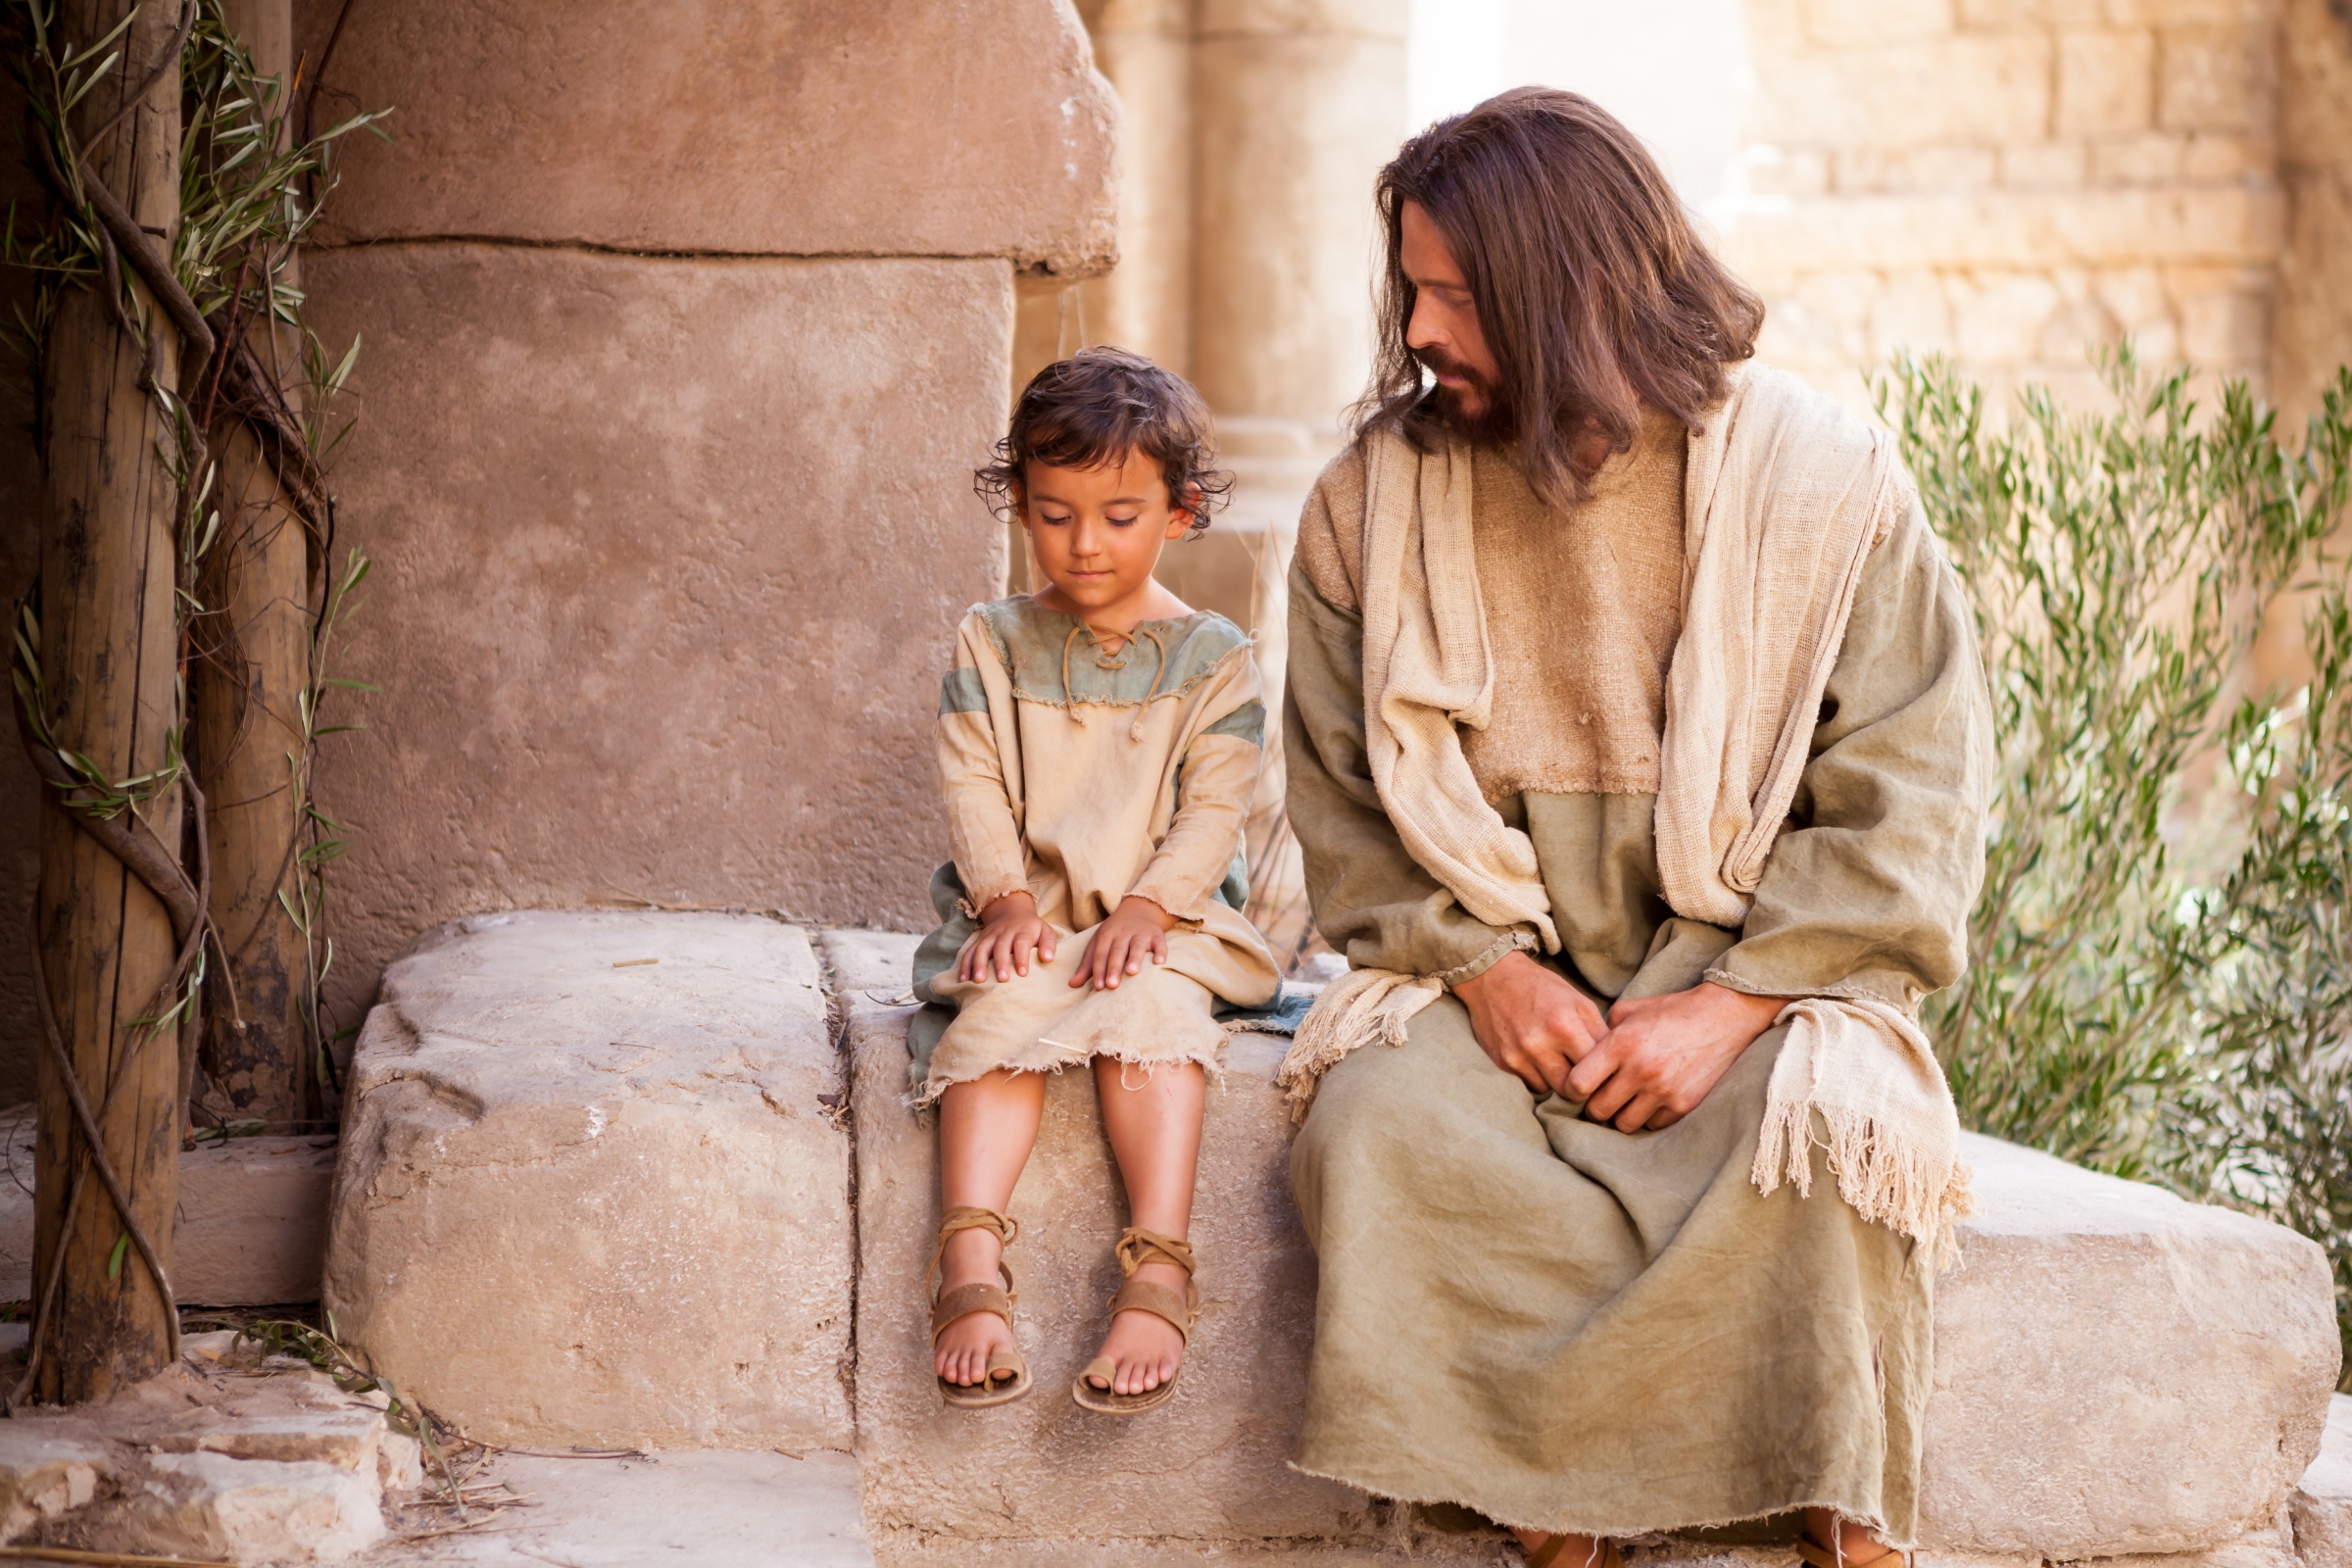 life of jesus christ The life, times and teachings of jesus christ this article explains the life of jesus beginning with his birth about 2000 years ago in the land of israel, his three-and-a-half year ministry, as well as his crucifixion and resurrection.